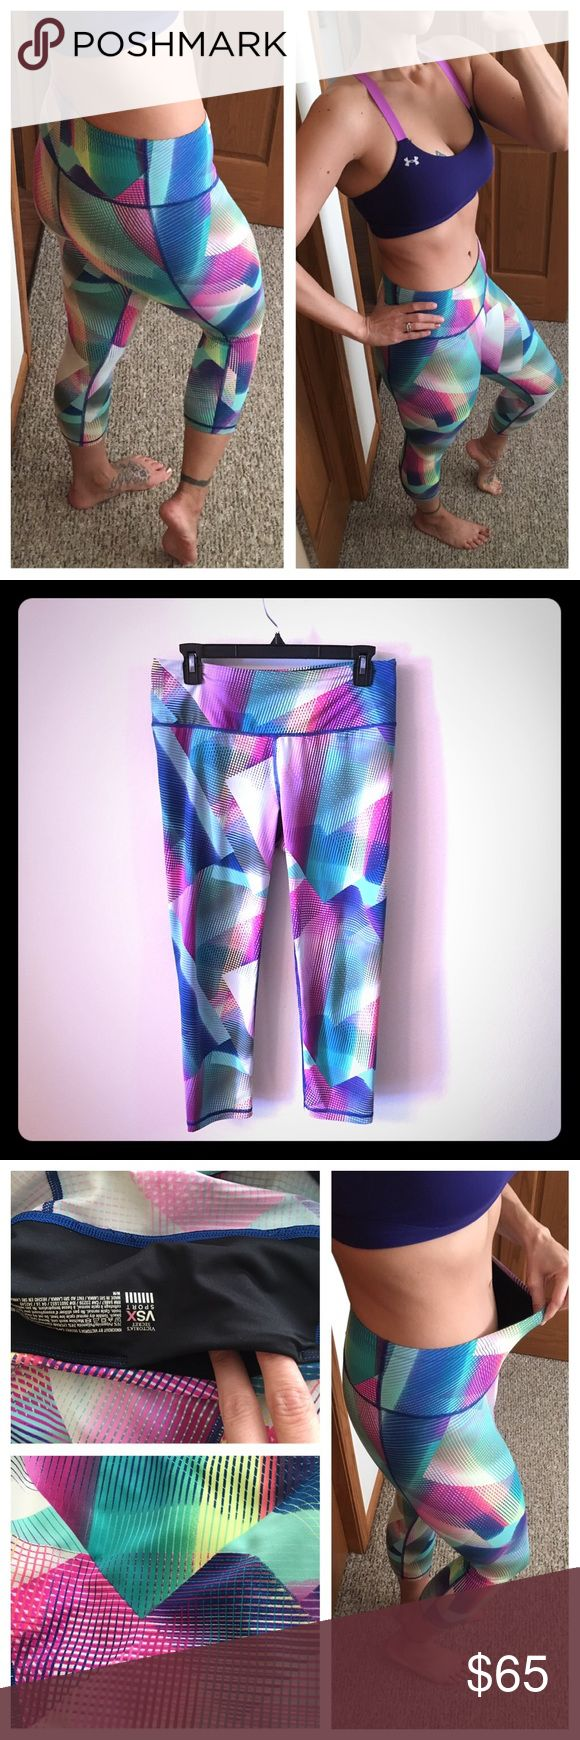 """Victoria's Secret VSX Sport knockout Capri 📦Same day shipping (as long as P.O. is open for business). ❤ Measurements are approximate. Descriptions are accurate to the best of my knowledge.  These vibrant VS capris are a multitude of colors to match with almost any color top. I love them & hate to part with them but I have dropped down to a size small in VS bottoms. Mid-rise: 76% Polymide/24% Lycra. Internal chord for cinching tighter + 3.75""""x3.75"""" back interior pocket. No holes/stains…"""